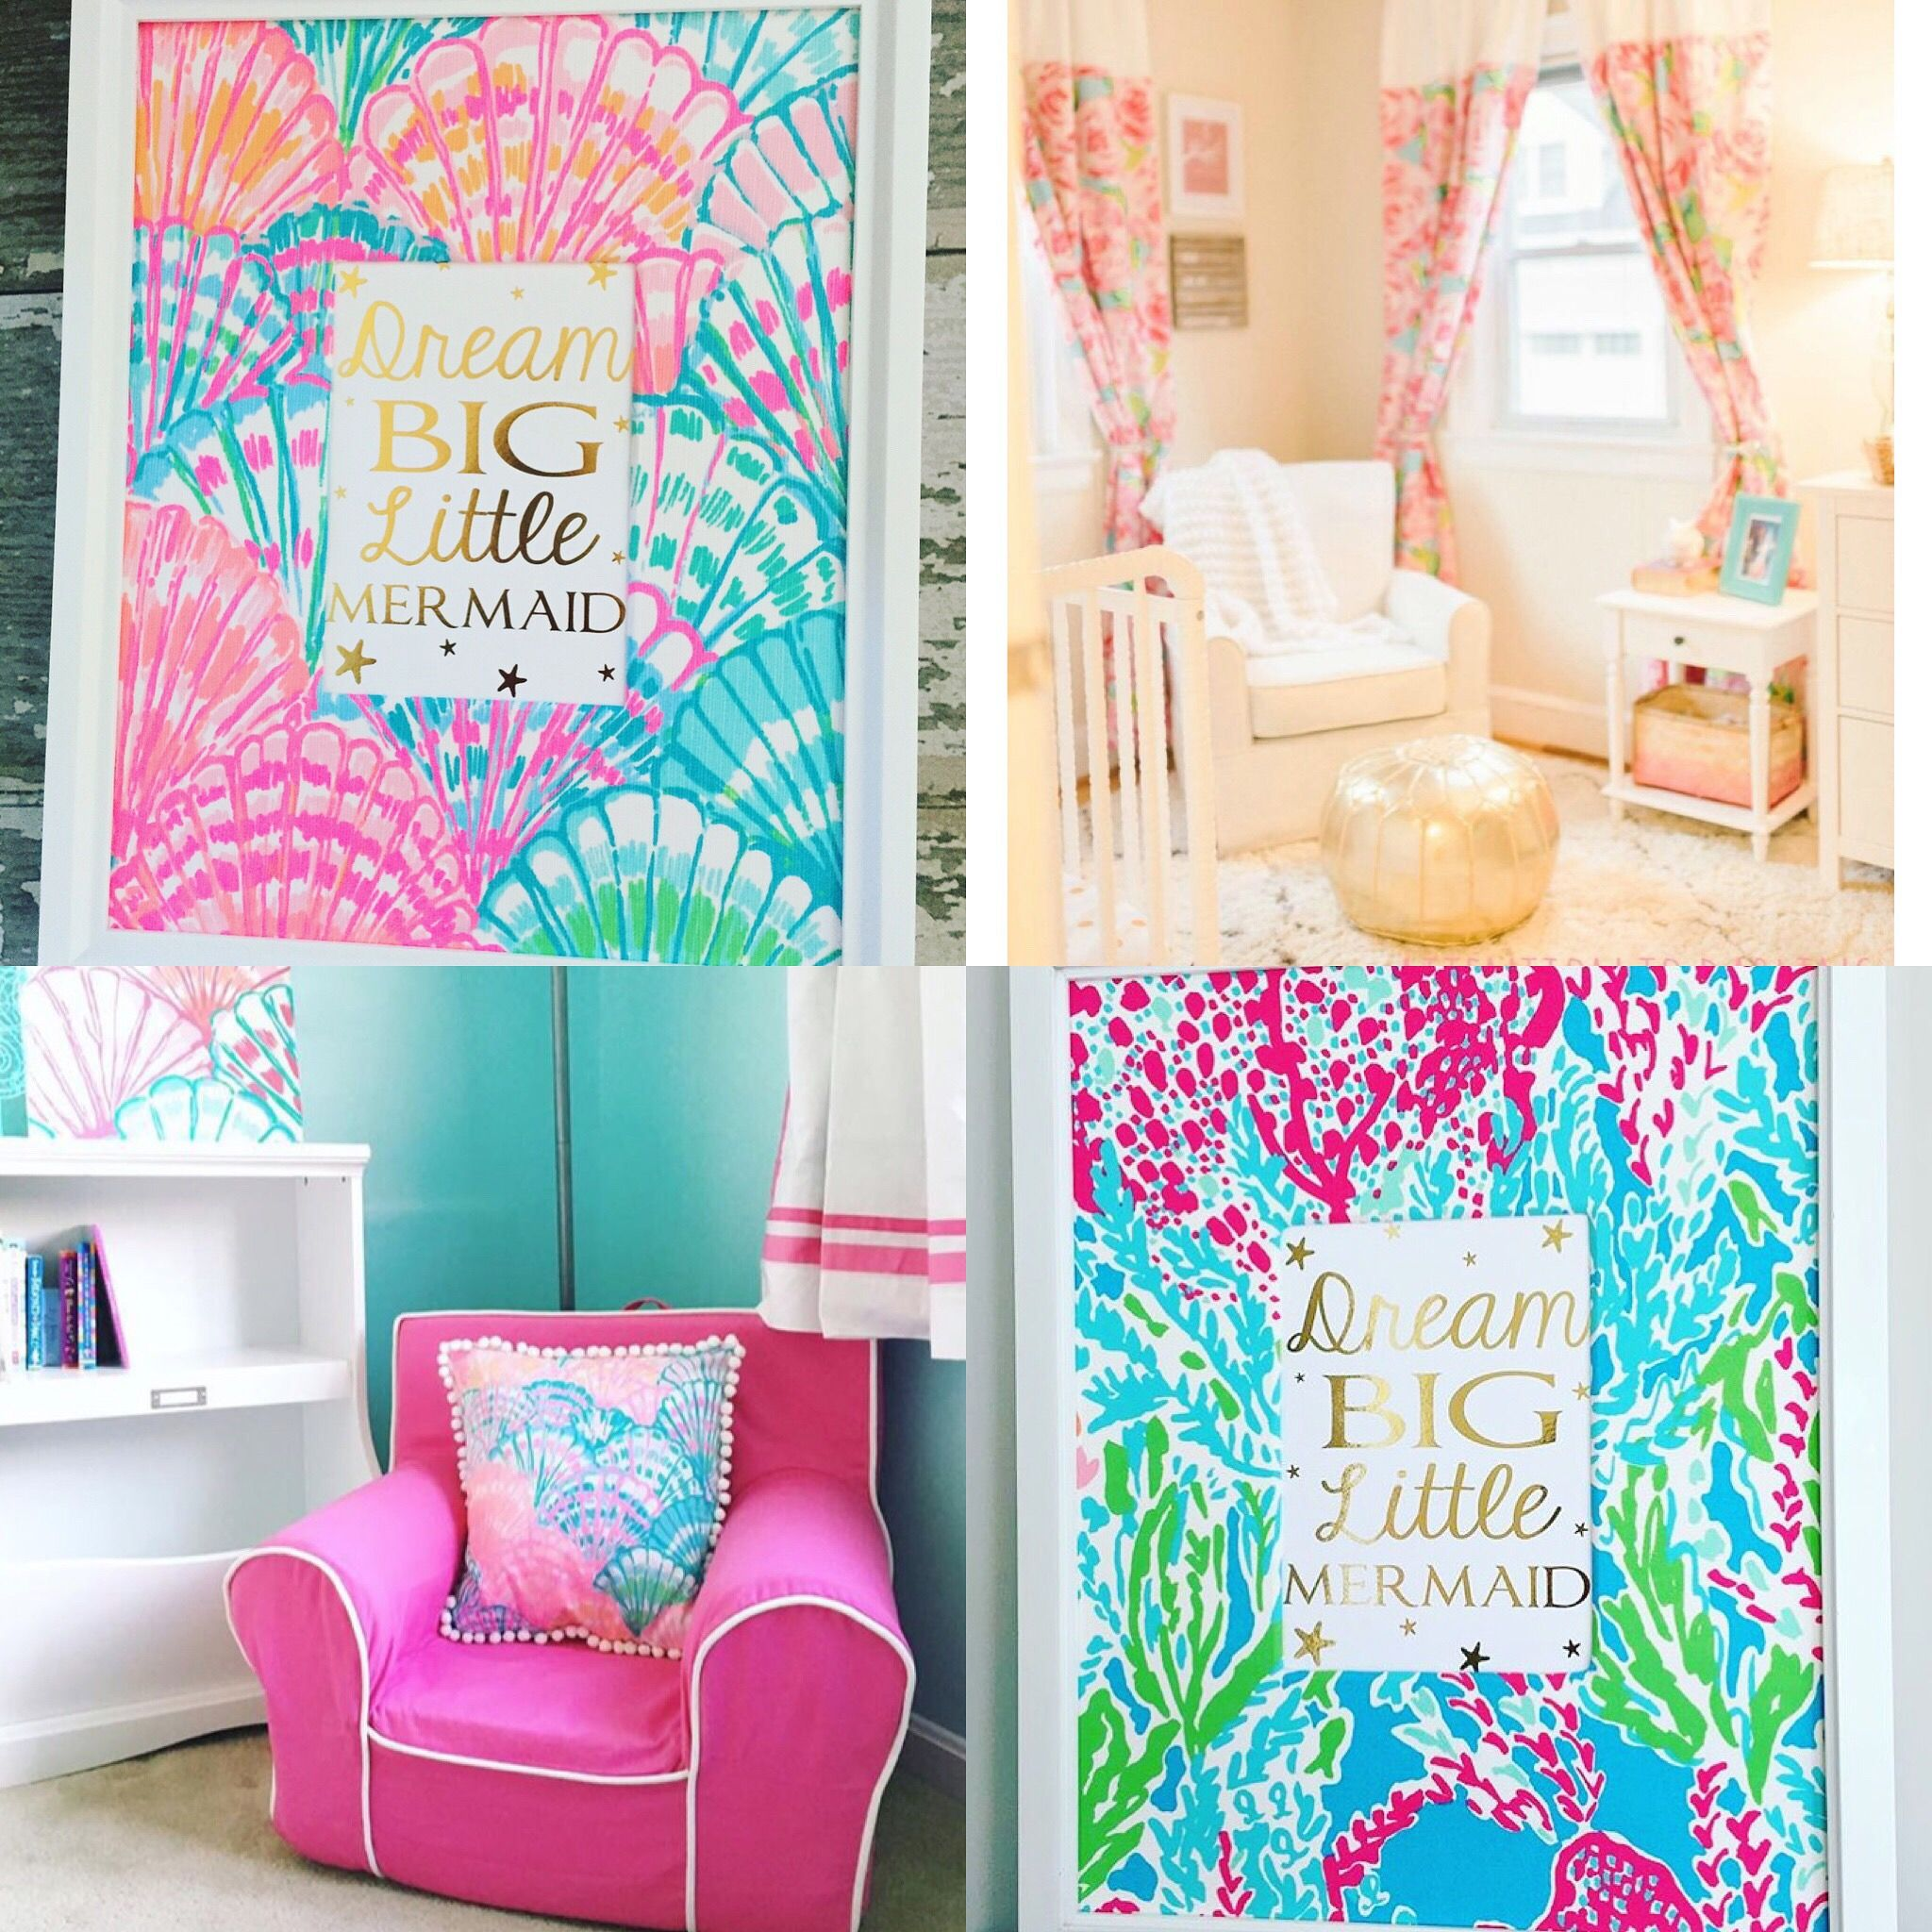 Lilly Pulitzer Nursery, Lilly Pulitzer Bedroom, Oh Shello Lilly Pulitzer,  Letu0027s Cha Cha